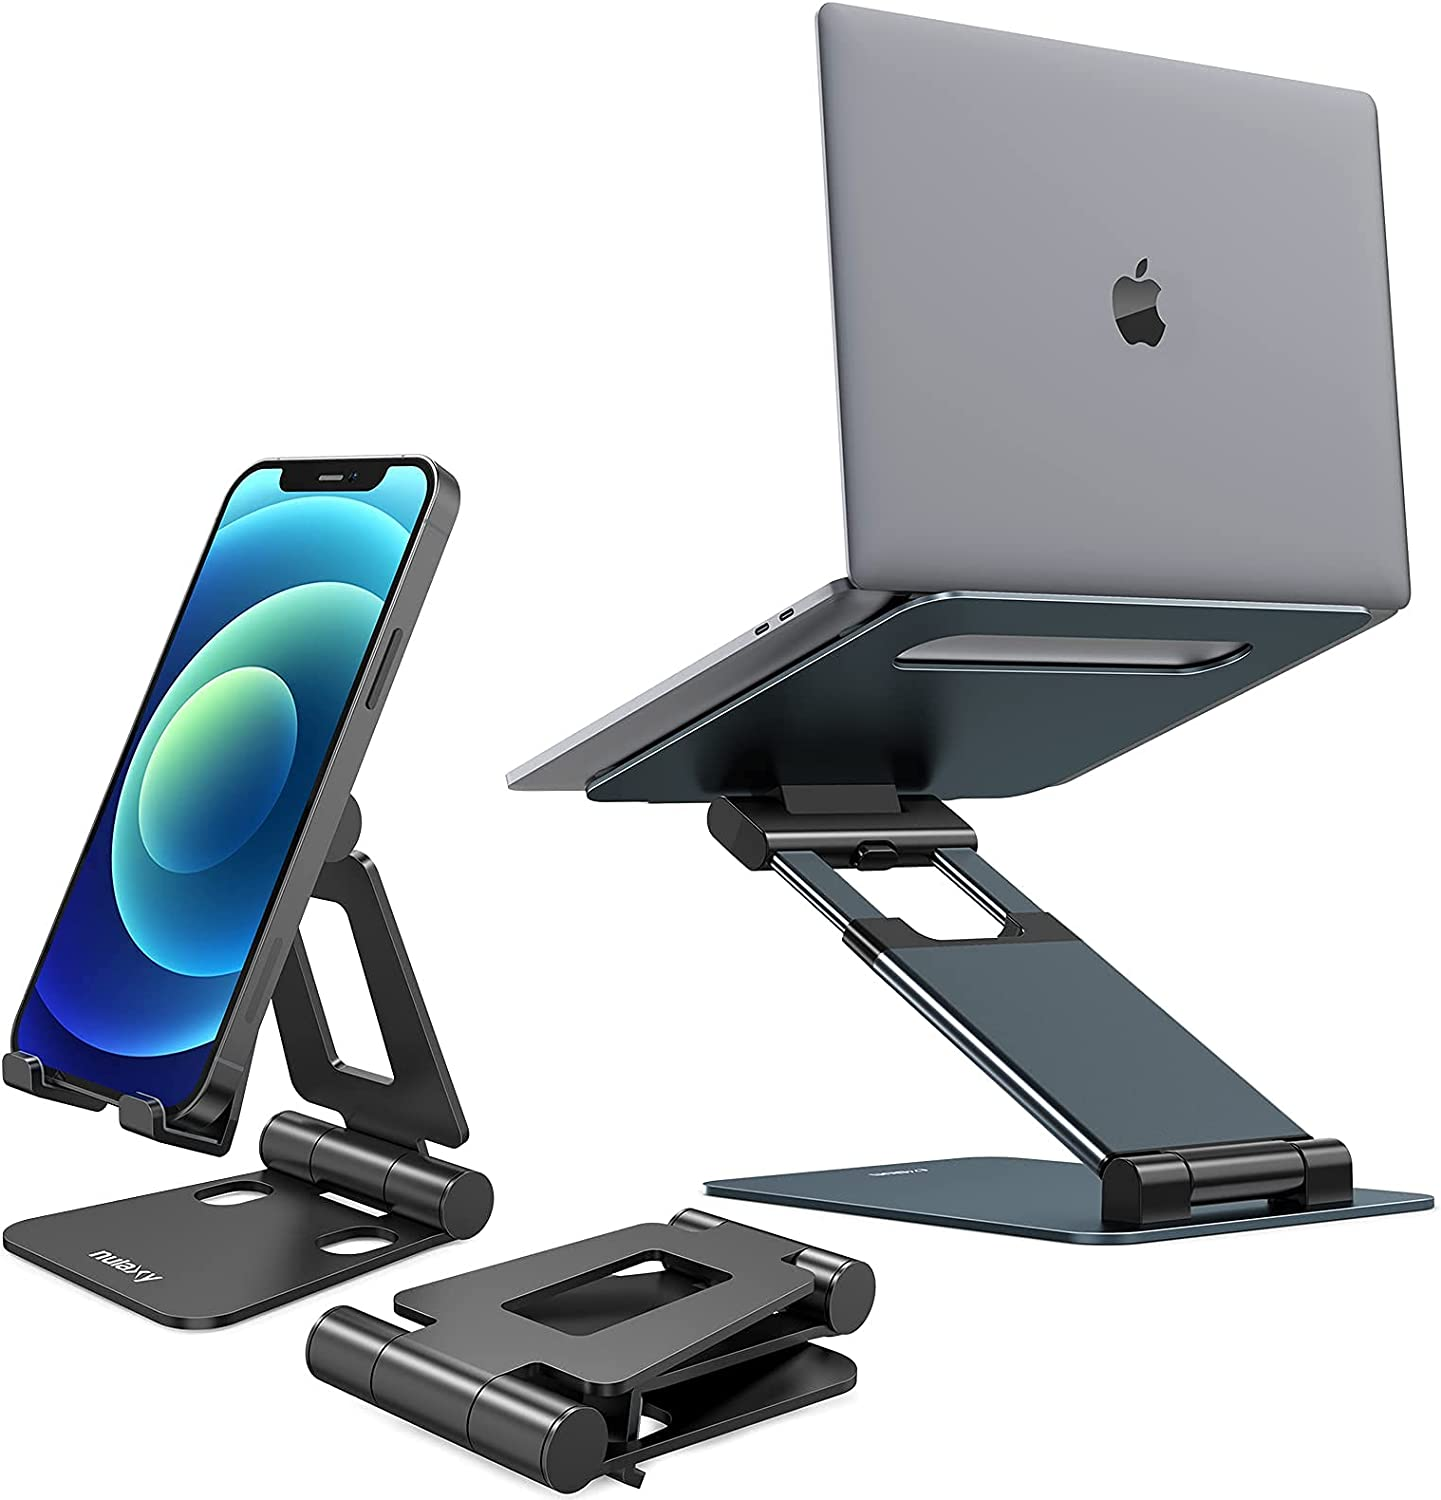 Nulaxy A4 Phone Stand & Nulaxy C5 Laptop Stand Bundle